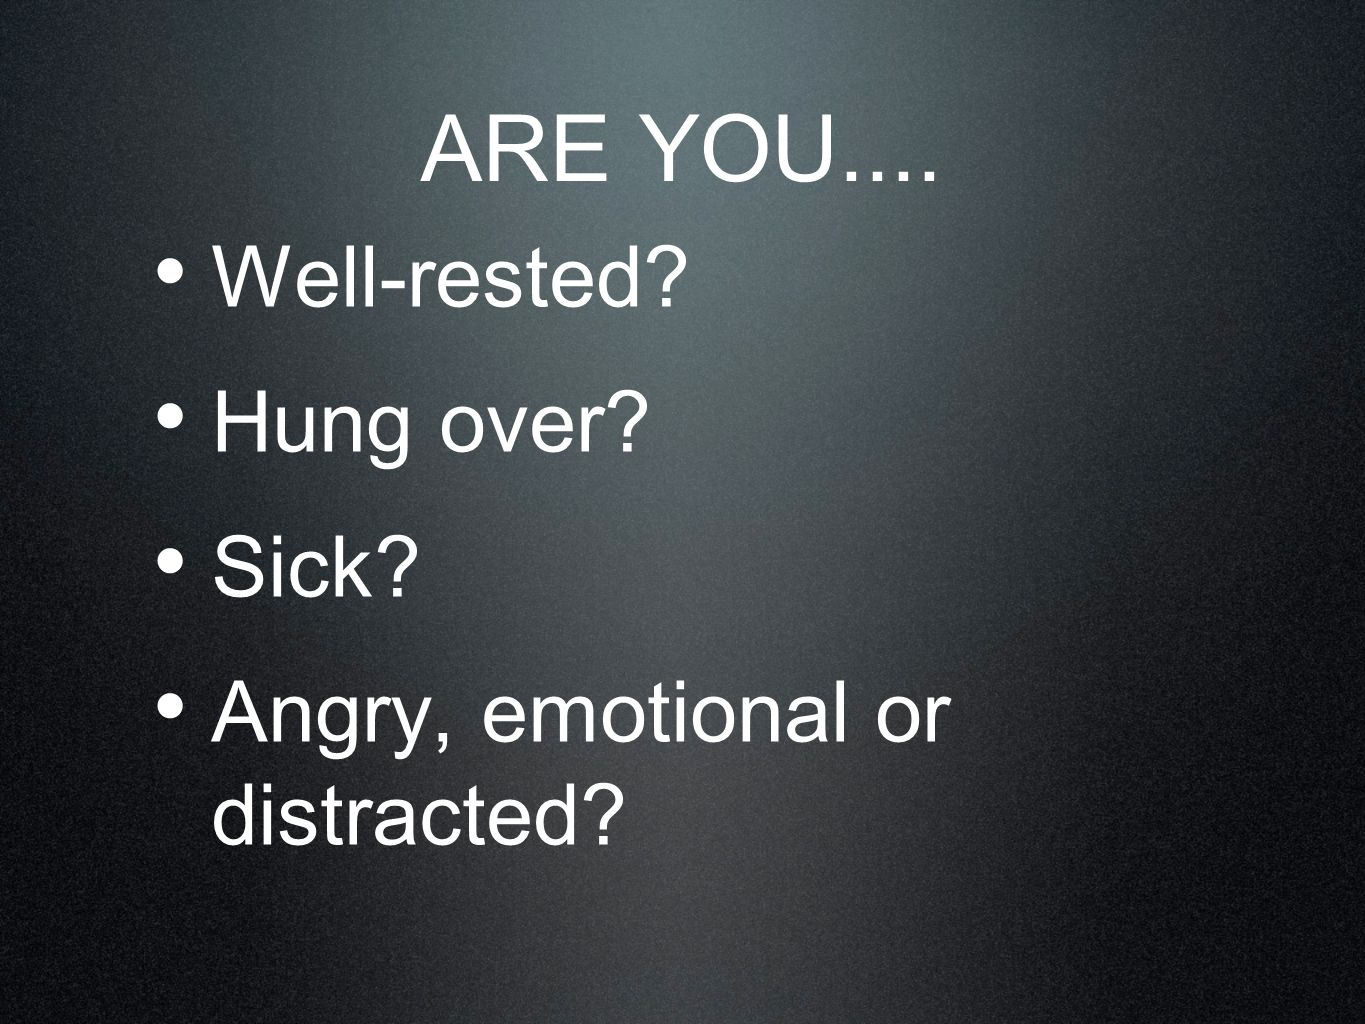 Well-rested? Hung over? Sick? Angry, emotional or distracted? ARE YOU....